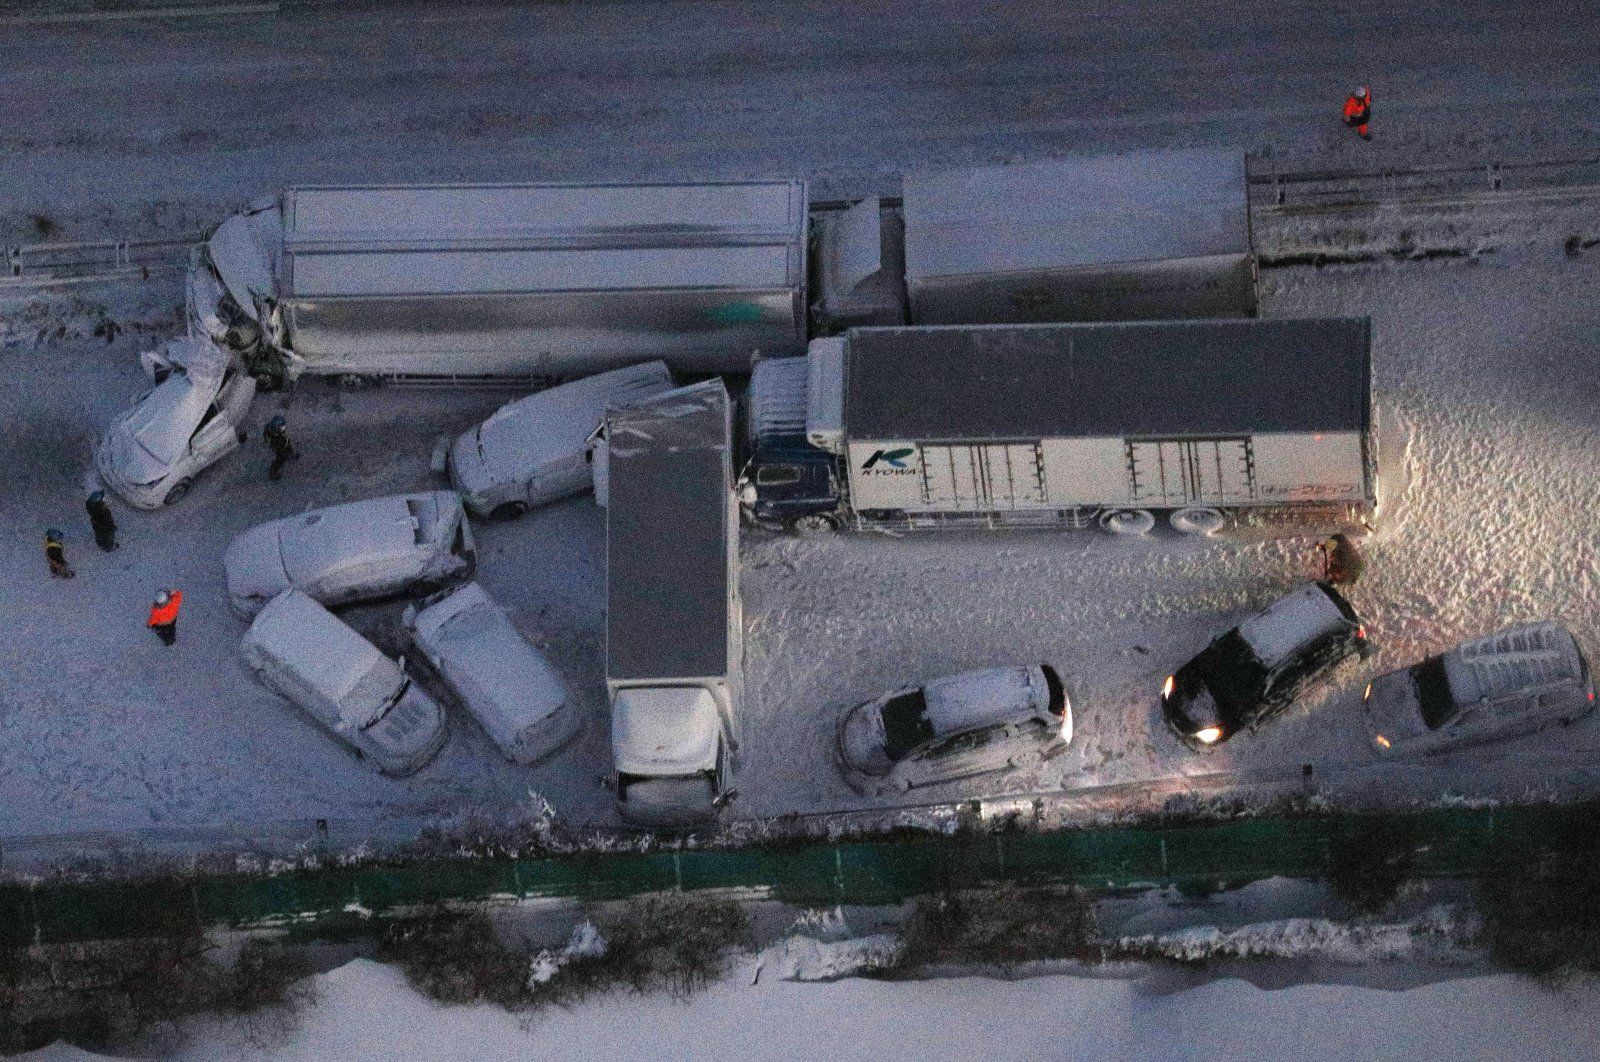 Damaged cars covered with snow after the accident on the Tohoku Expressway in Osaki city, Miyagi prefecture, northern Japan, Tuesday, Jan. 19. 2021. (Kyodo News via AP)